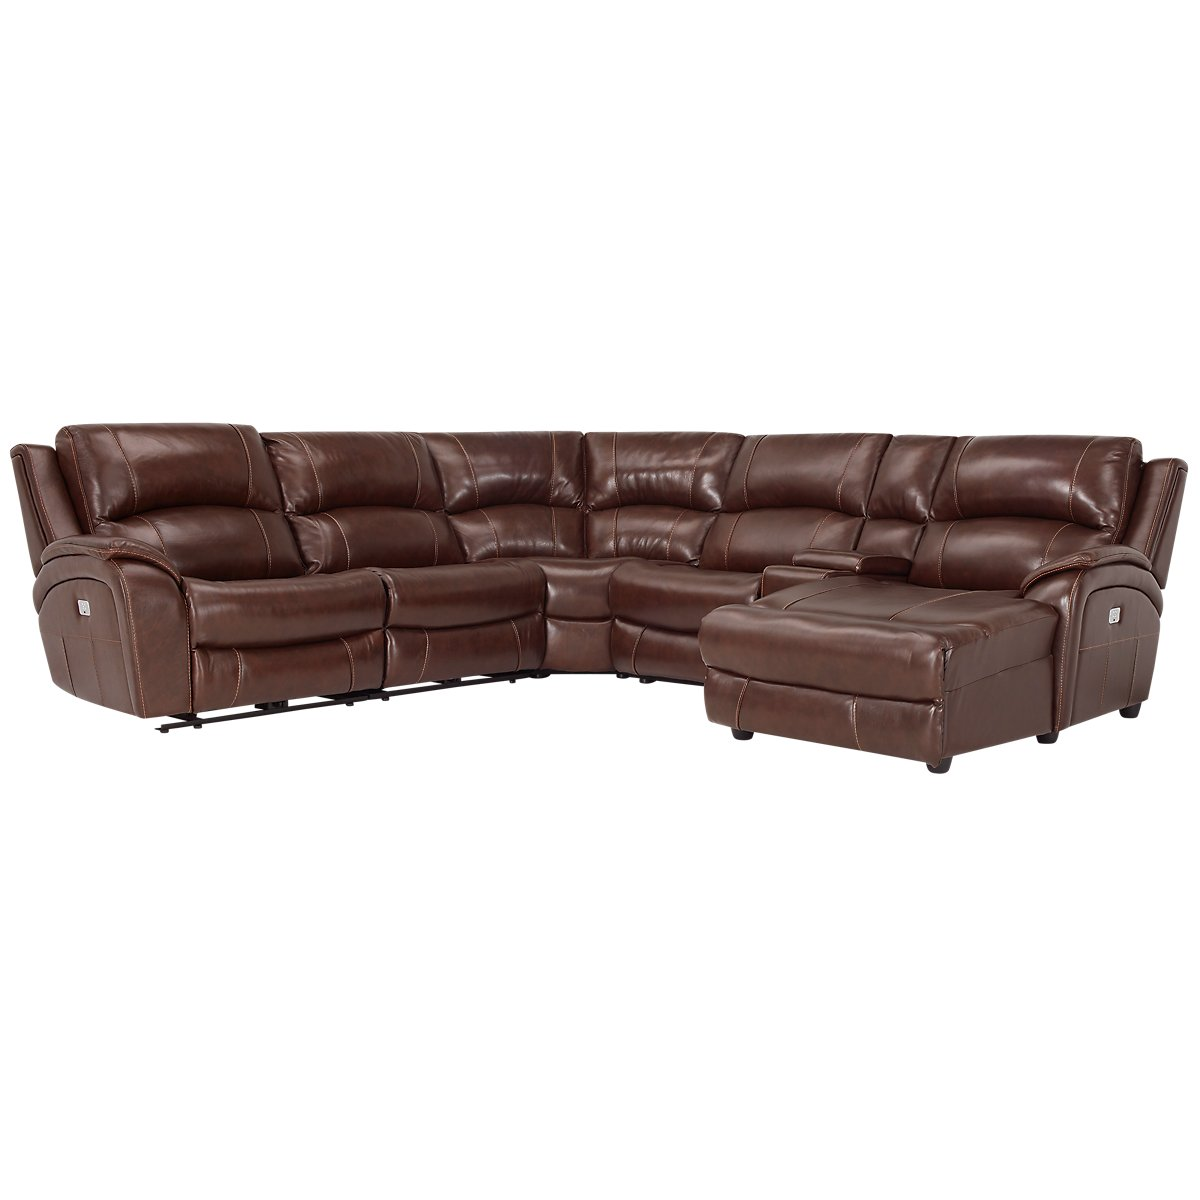 City furniture memphis medium brown leather right chaise for Brown leather chaise